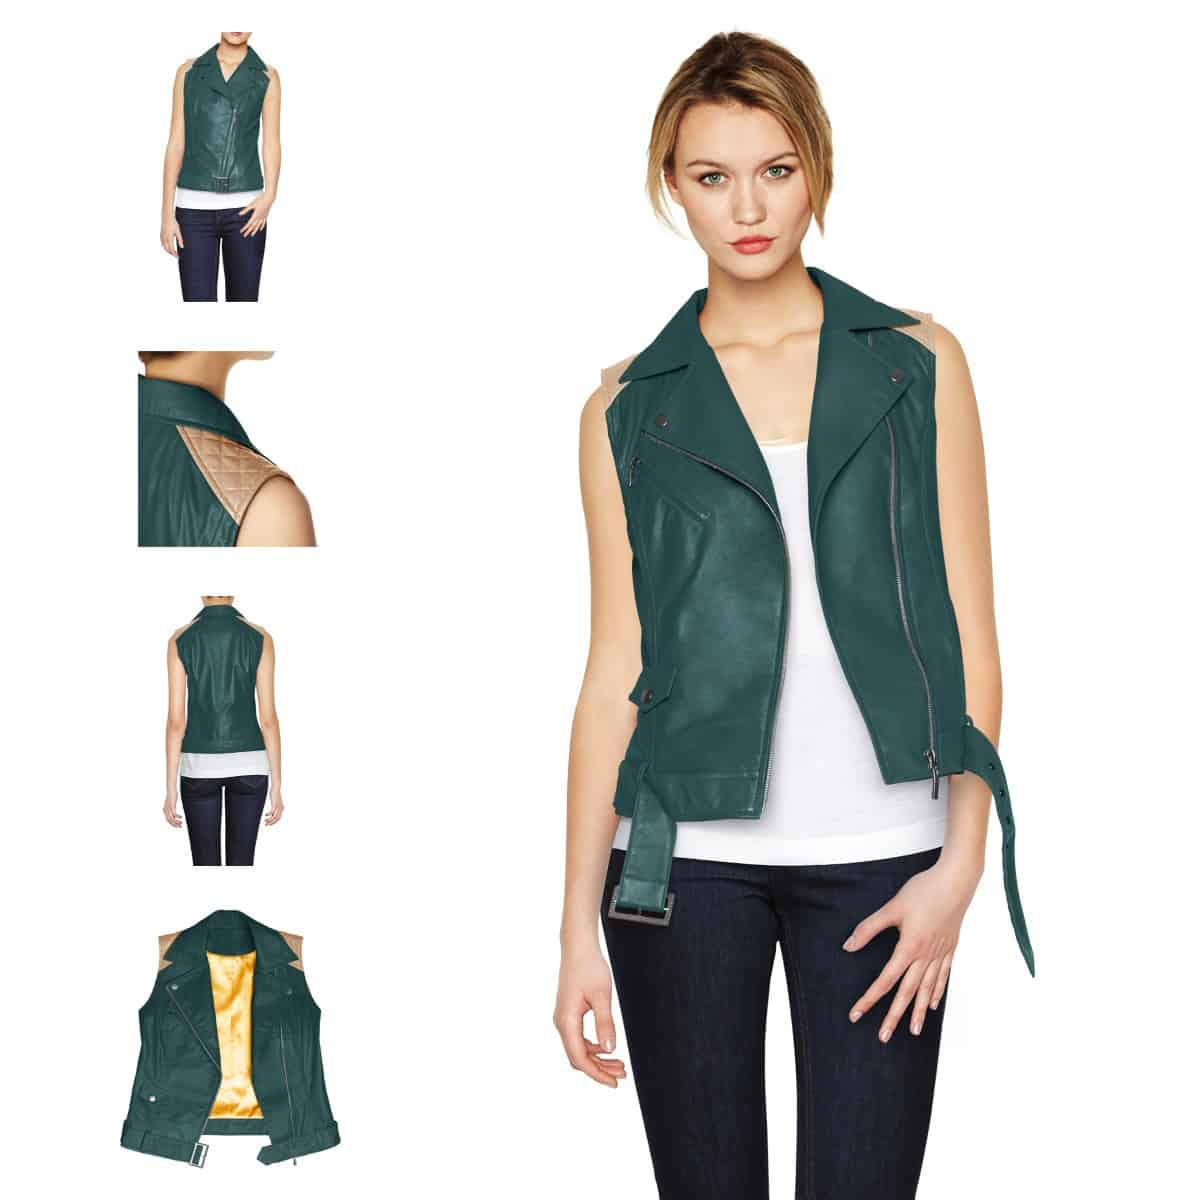 Sleeveless Jackets. Clothing. Women. Sleeveless Jackets. Showing 48 of results that match your query. Search Product Result. Product - Nlife Women's Sleeveless Outwear Solid Autumn Zip Vest Coat. Product Image. Price $ 69 - $ Product Title. Nlife Women's Sleeveless Outwear Solid Autumn Zip Vest Coat.